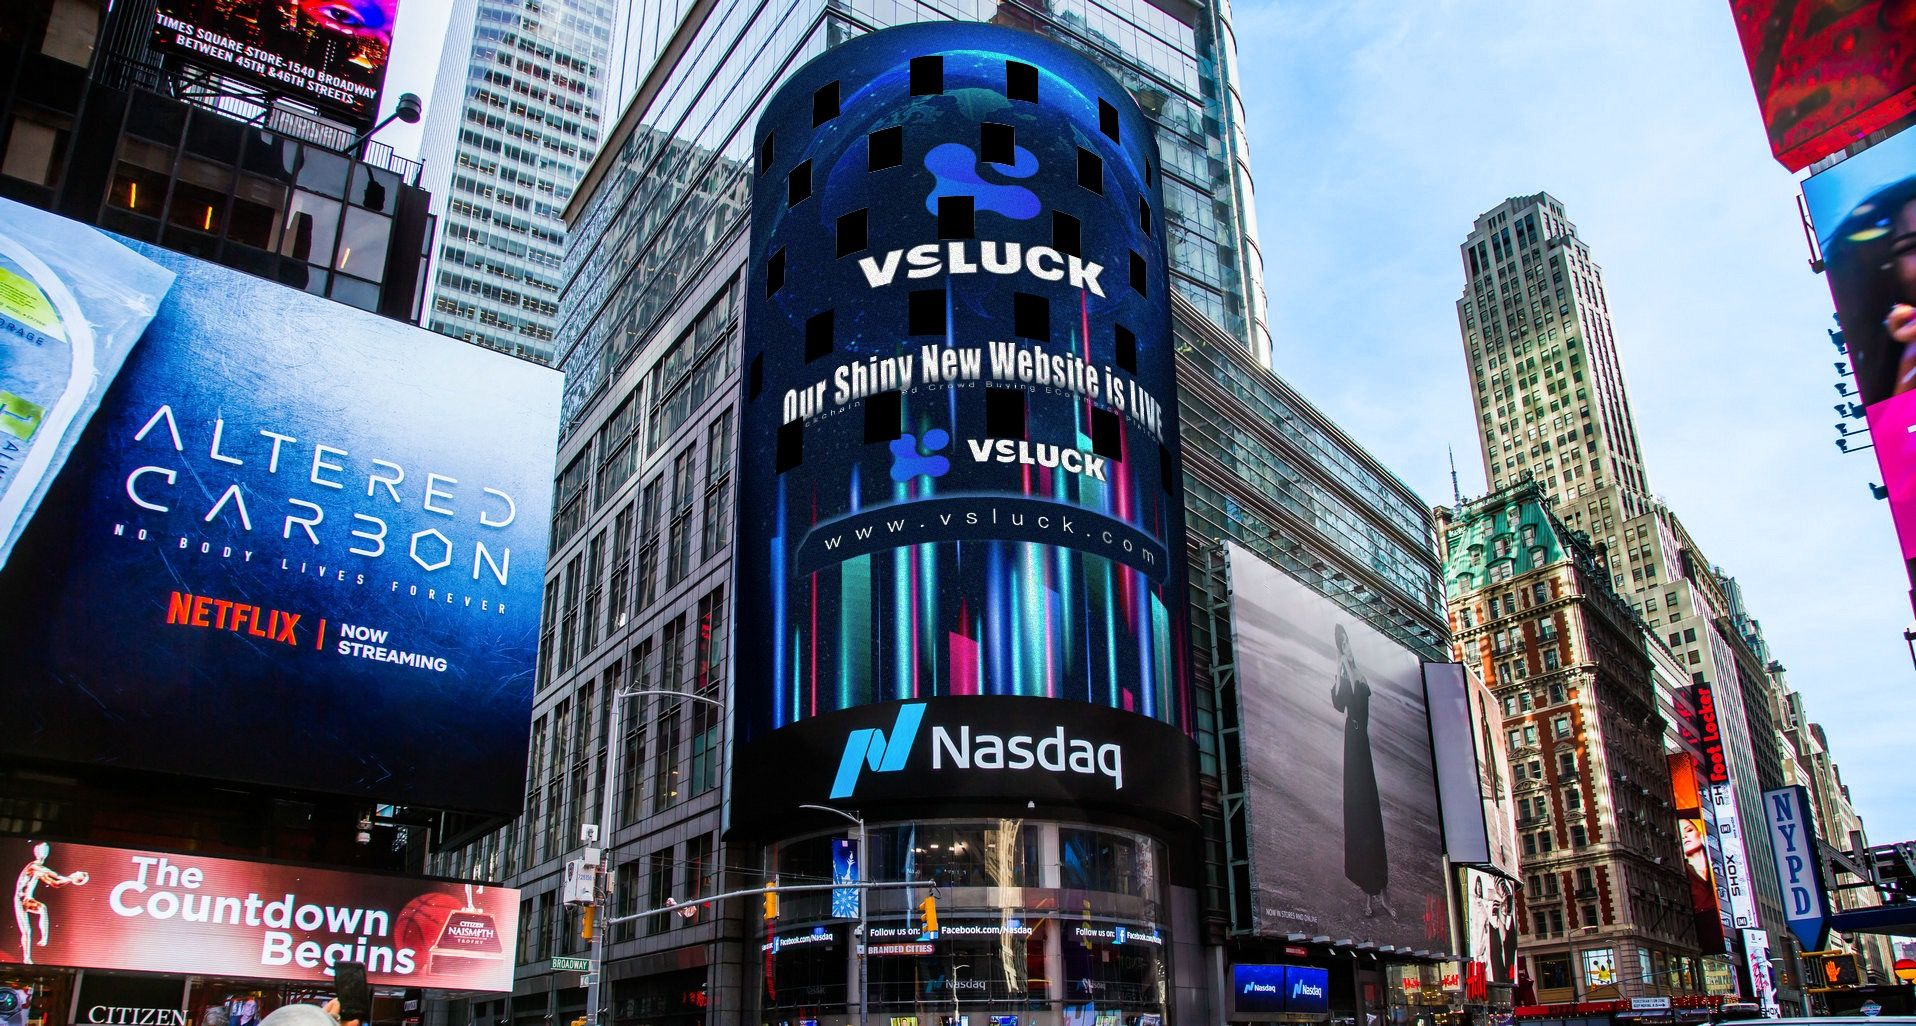 Vsluck Appear On Nasdaq Nasdaq Times Square Streaming